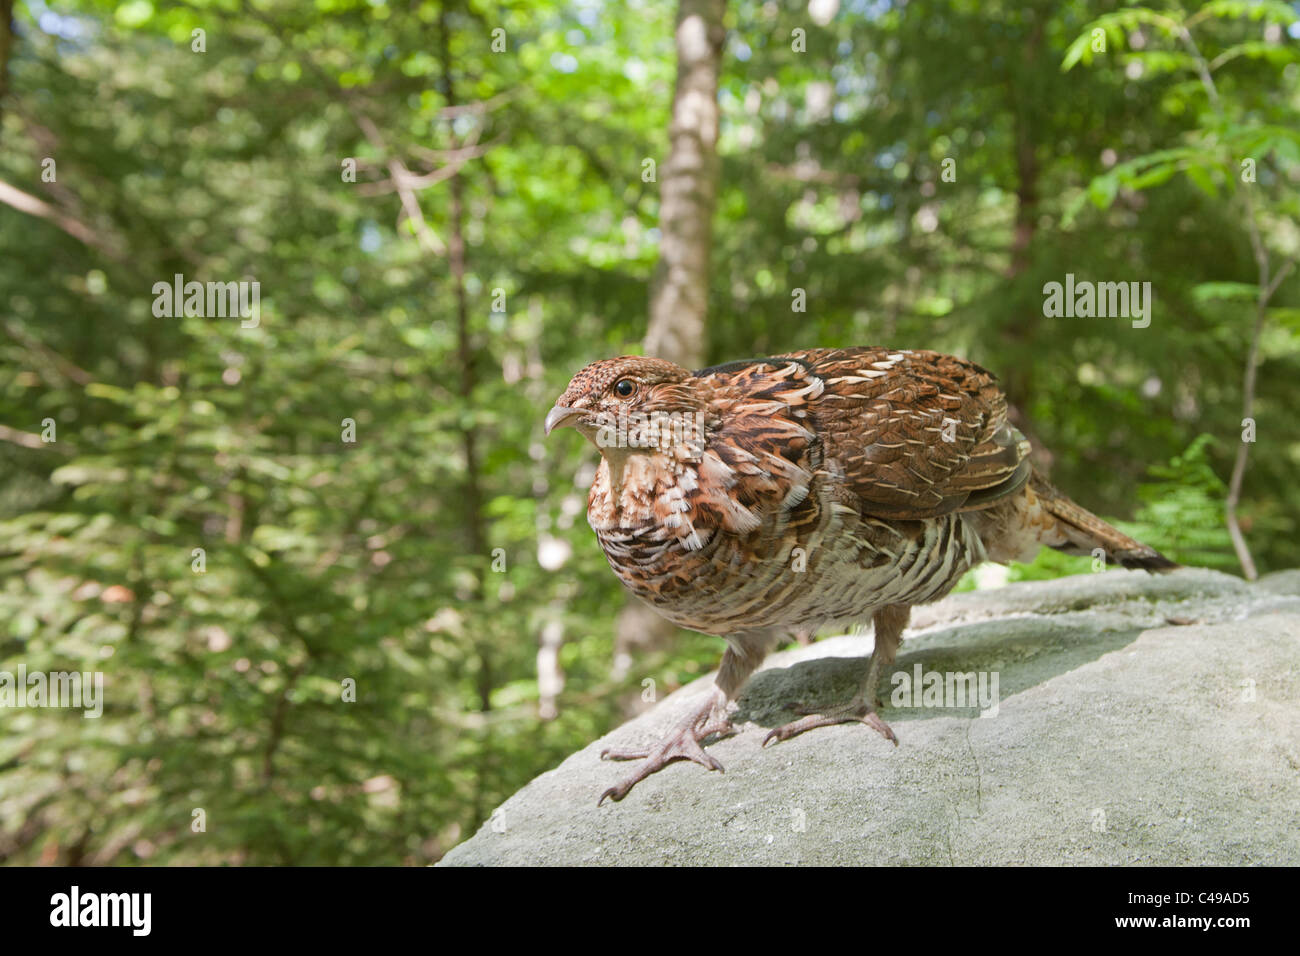 Ruffed Grouse - Stock Image